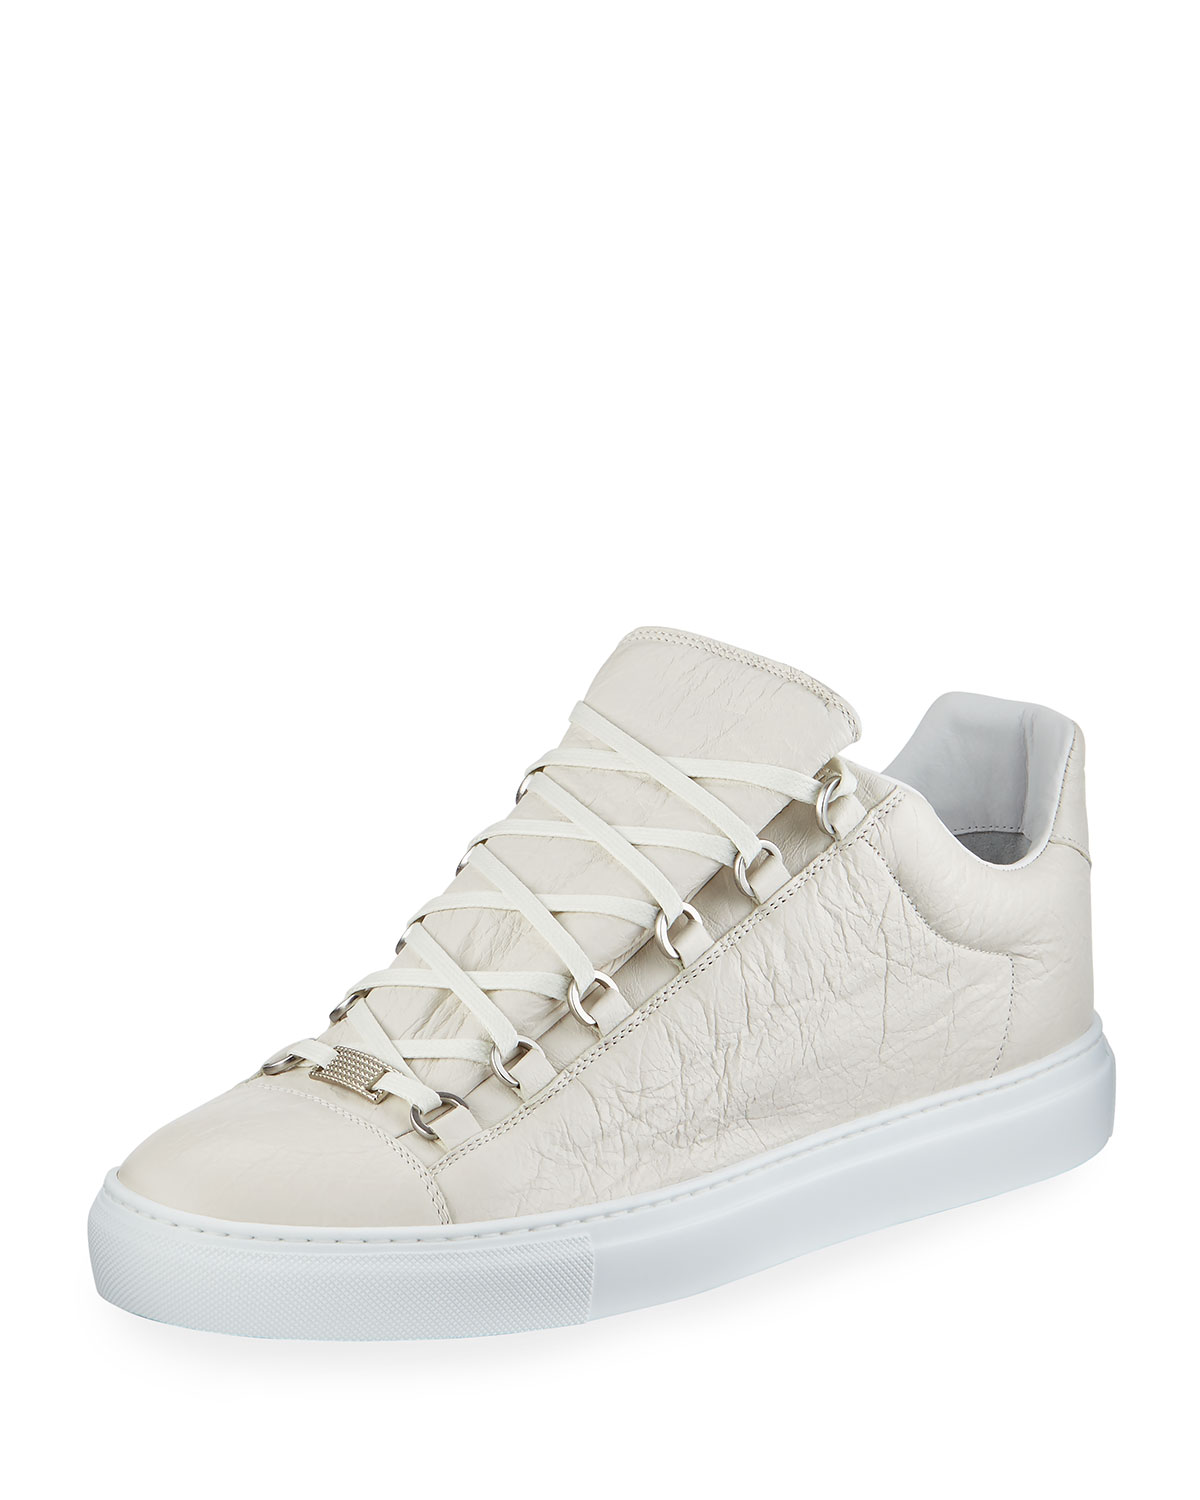 d973b861d8fd Balenciaga Men s Arena Leather Low-Top Sneakers